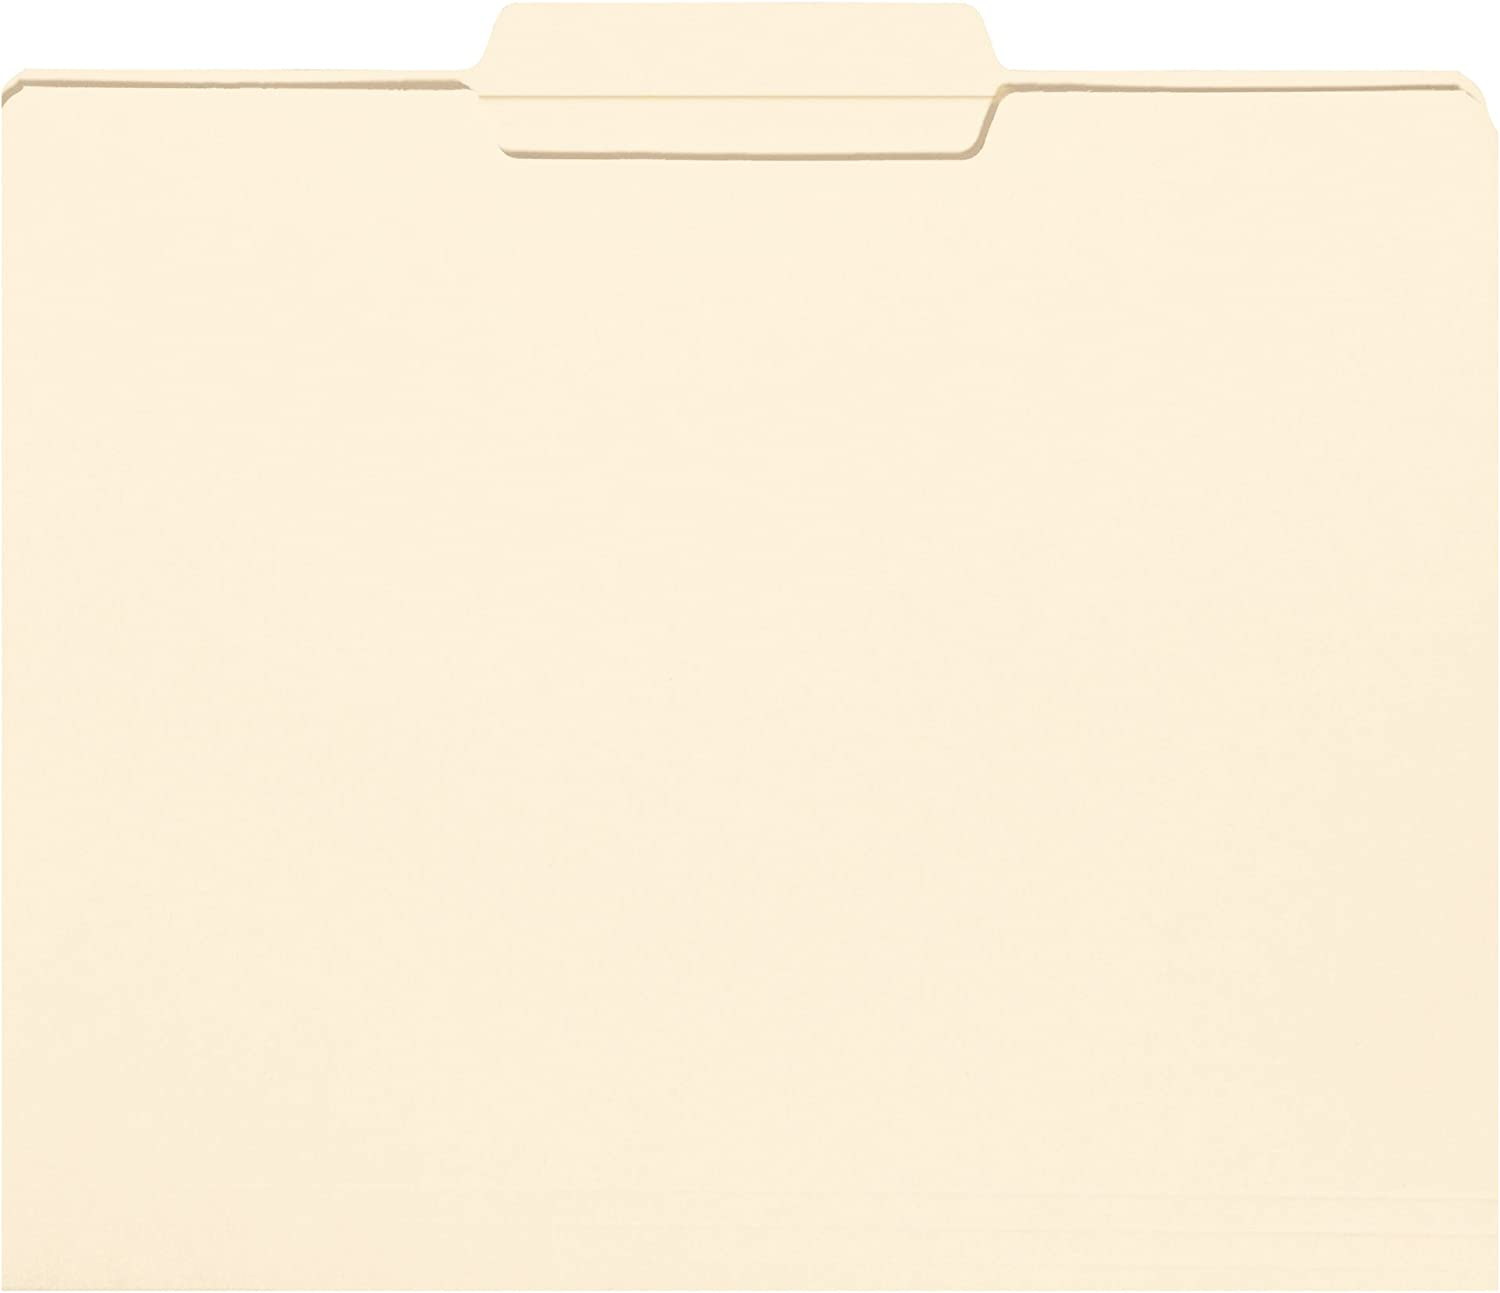 Smead File Folder, Reinforced 1/3-Cut Tab Center Position, Letter Size, Manila, 100 Per Box (10336)